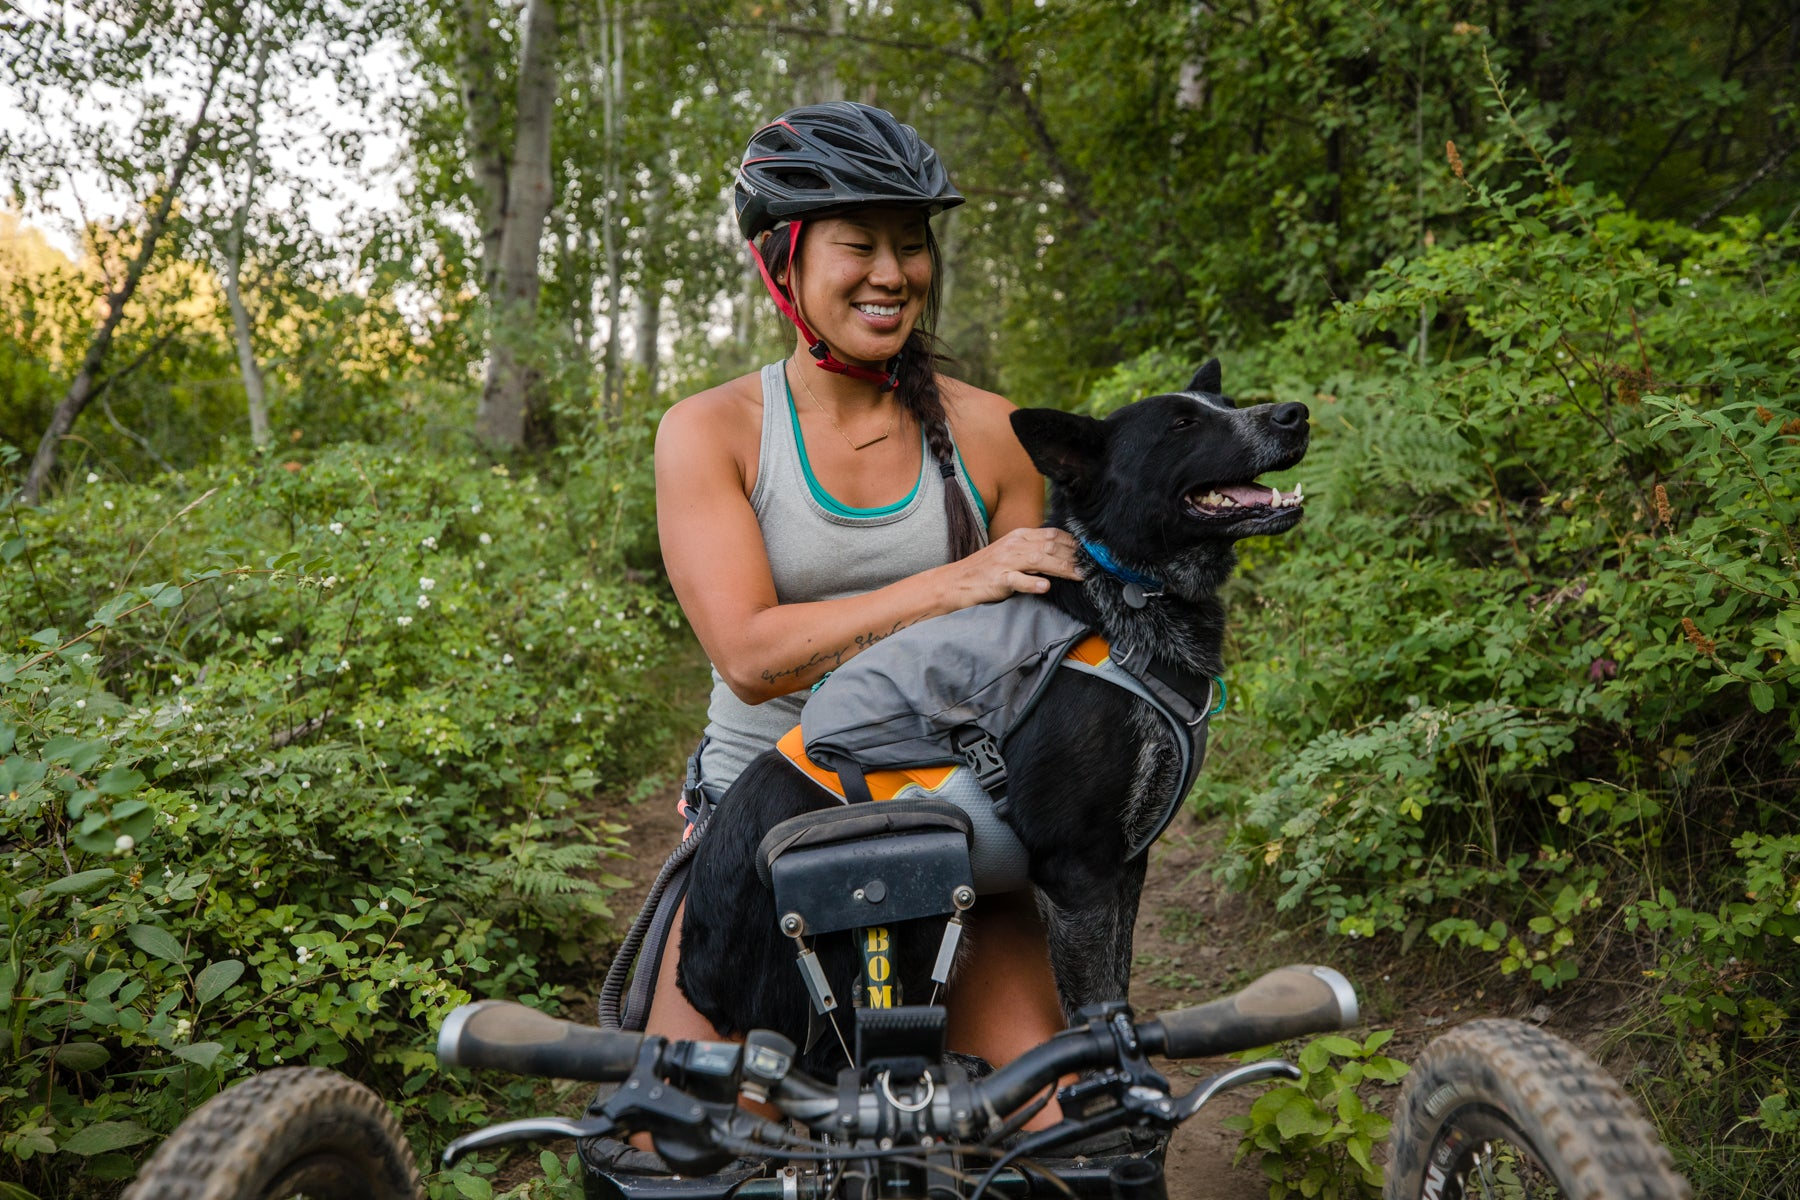 Bernie in Switchbak harness with Jet stream cooling vest underneath sits on Anna's lap on the off road handcycle.